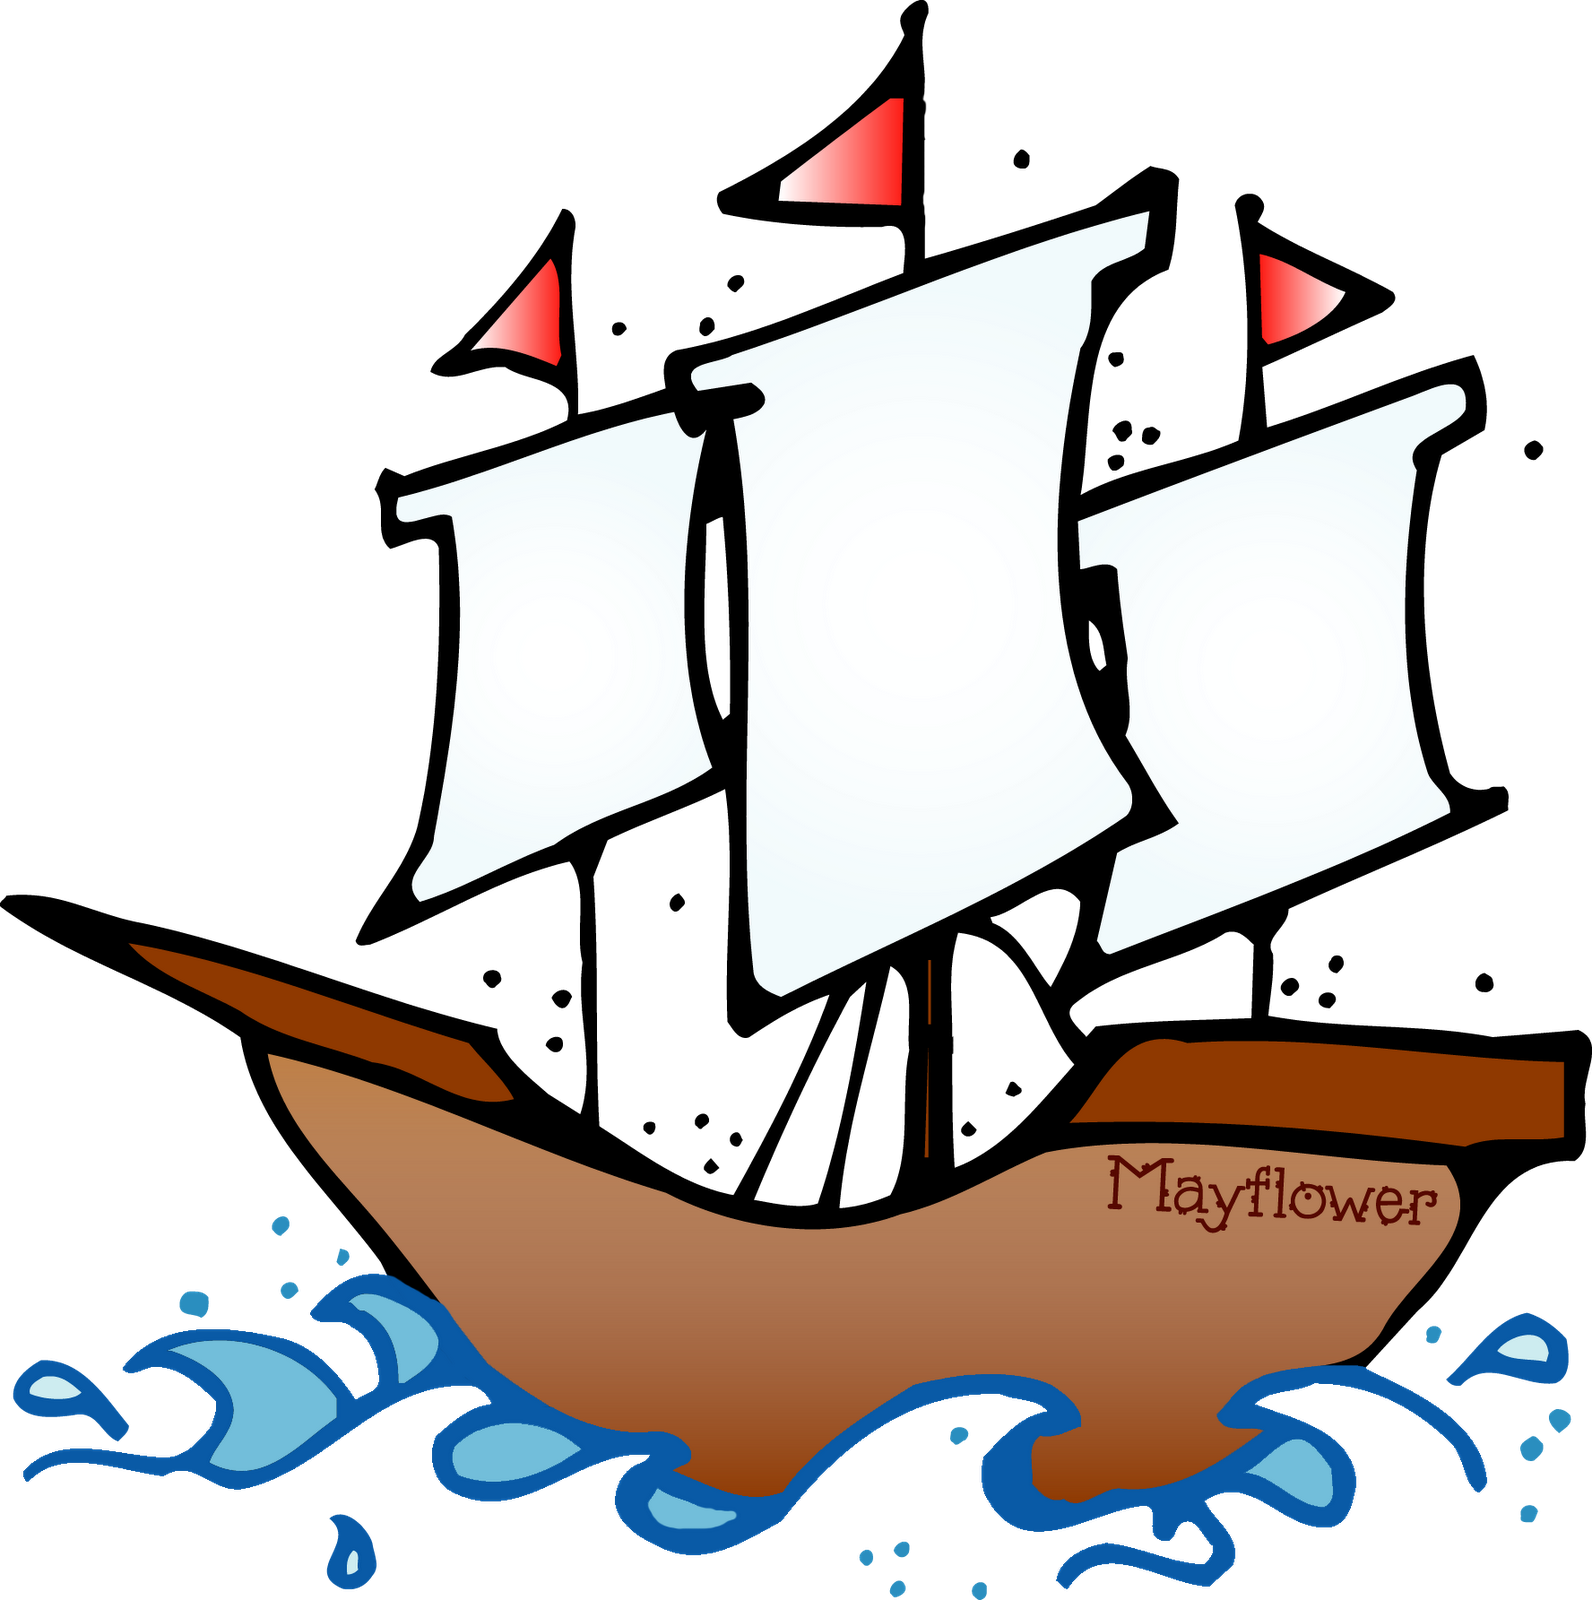 Mayflower clipart explorer ship, Mayflower explorer ship.